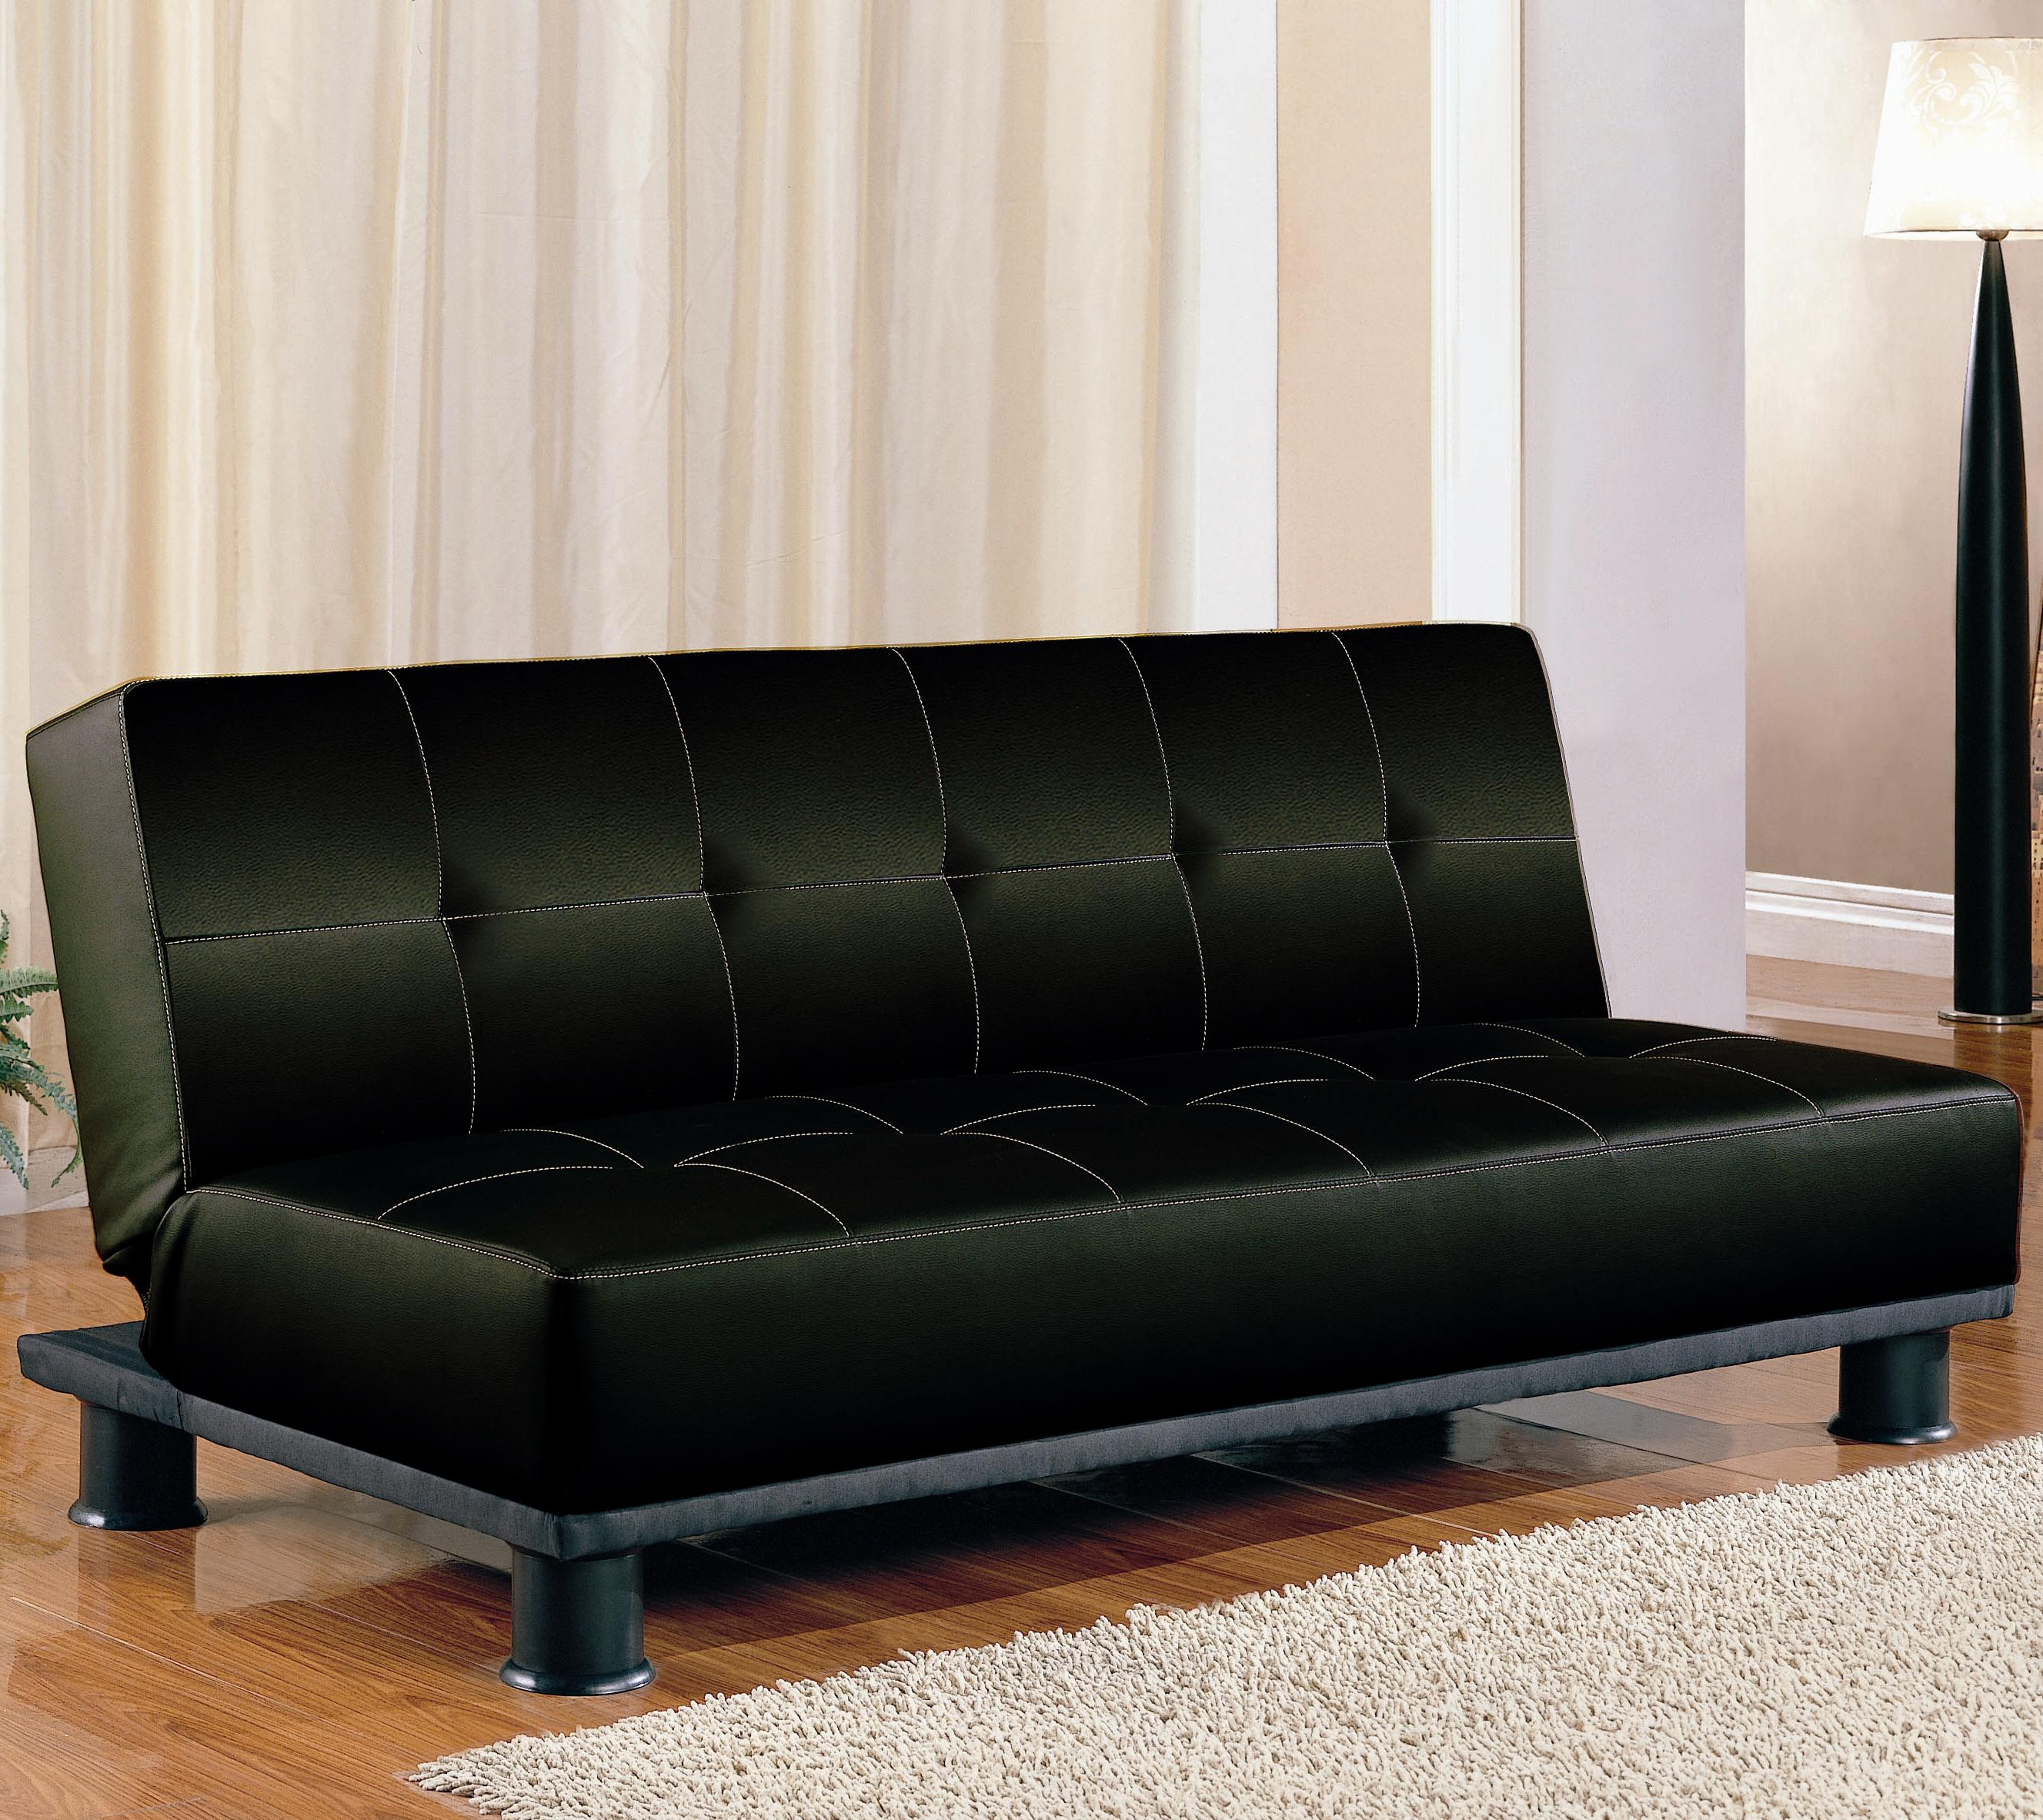 Modern armless chair - Modern Futon Sofa Bed This Stylish Contemporary Sofa